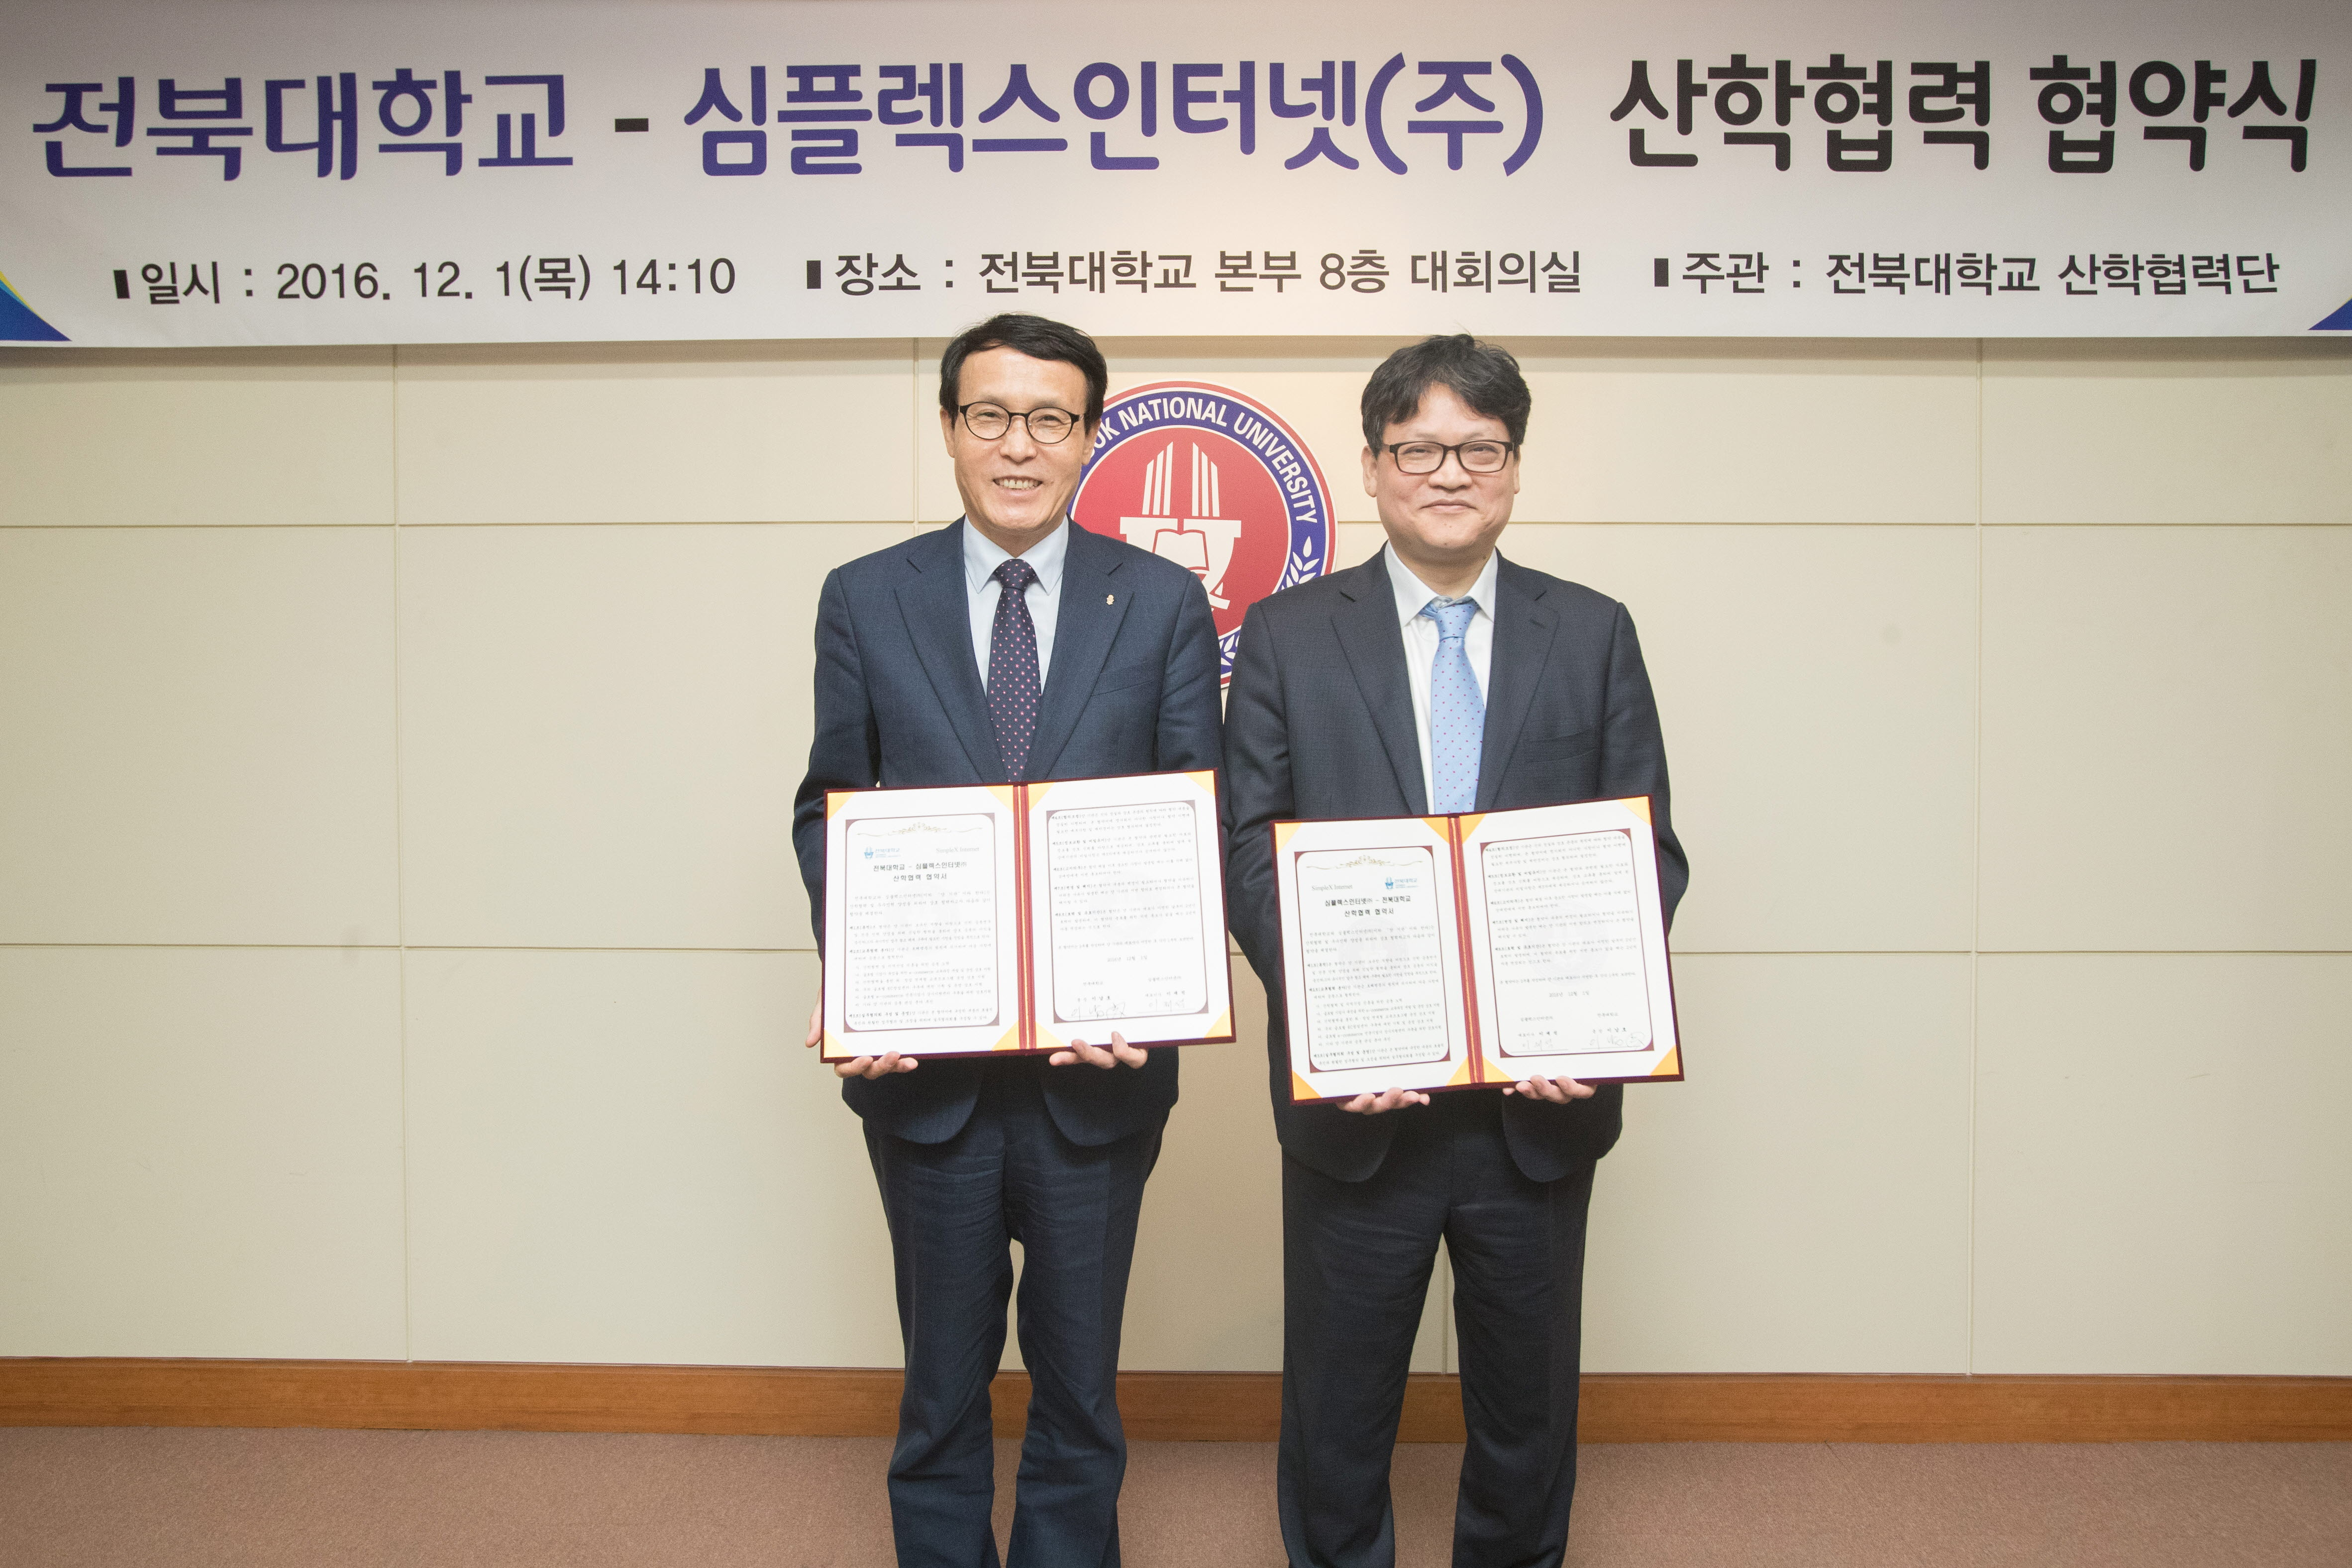 Chonbuk National University President Nam-Ho Lee (left) and Cafe24 CEO Jae-Suk Lee pose for a photo after signing an MOU on Dec. 1 to nurture young entrepreneurs who want to launch an e-commerce business.